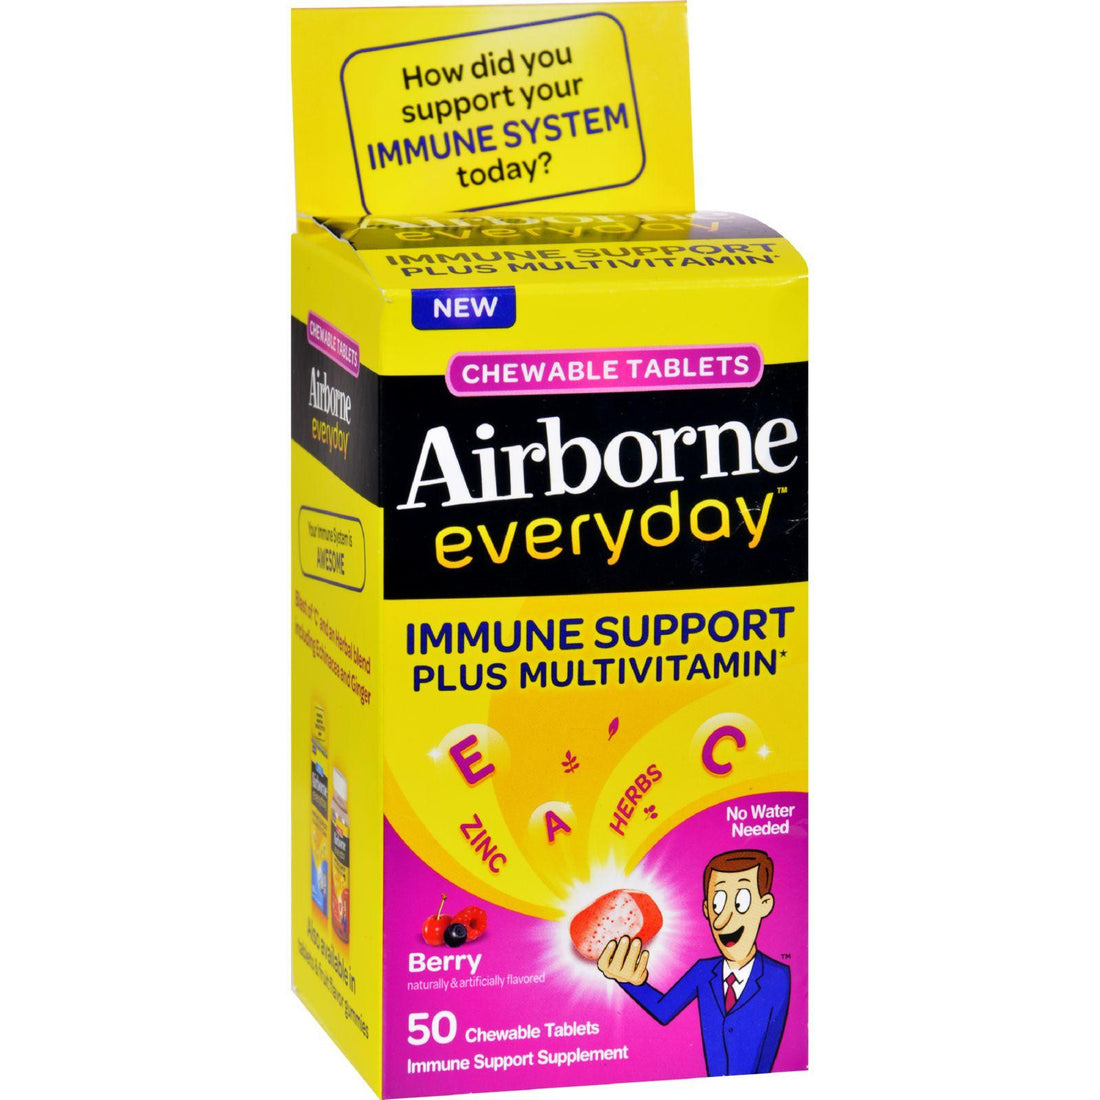 Mother Mantis: Airborne Everyday Chewable Multivitamin Tablets - Berry - 50 Count Airborne